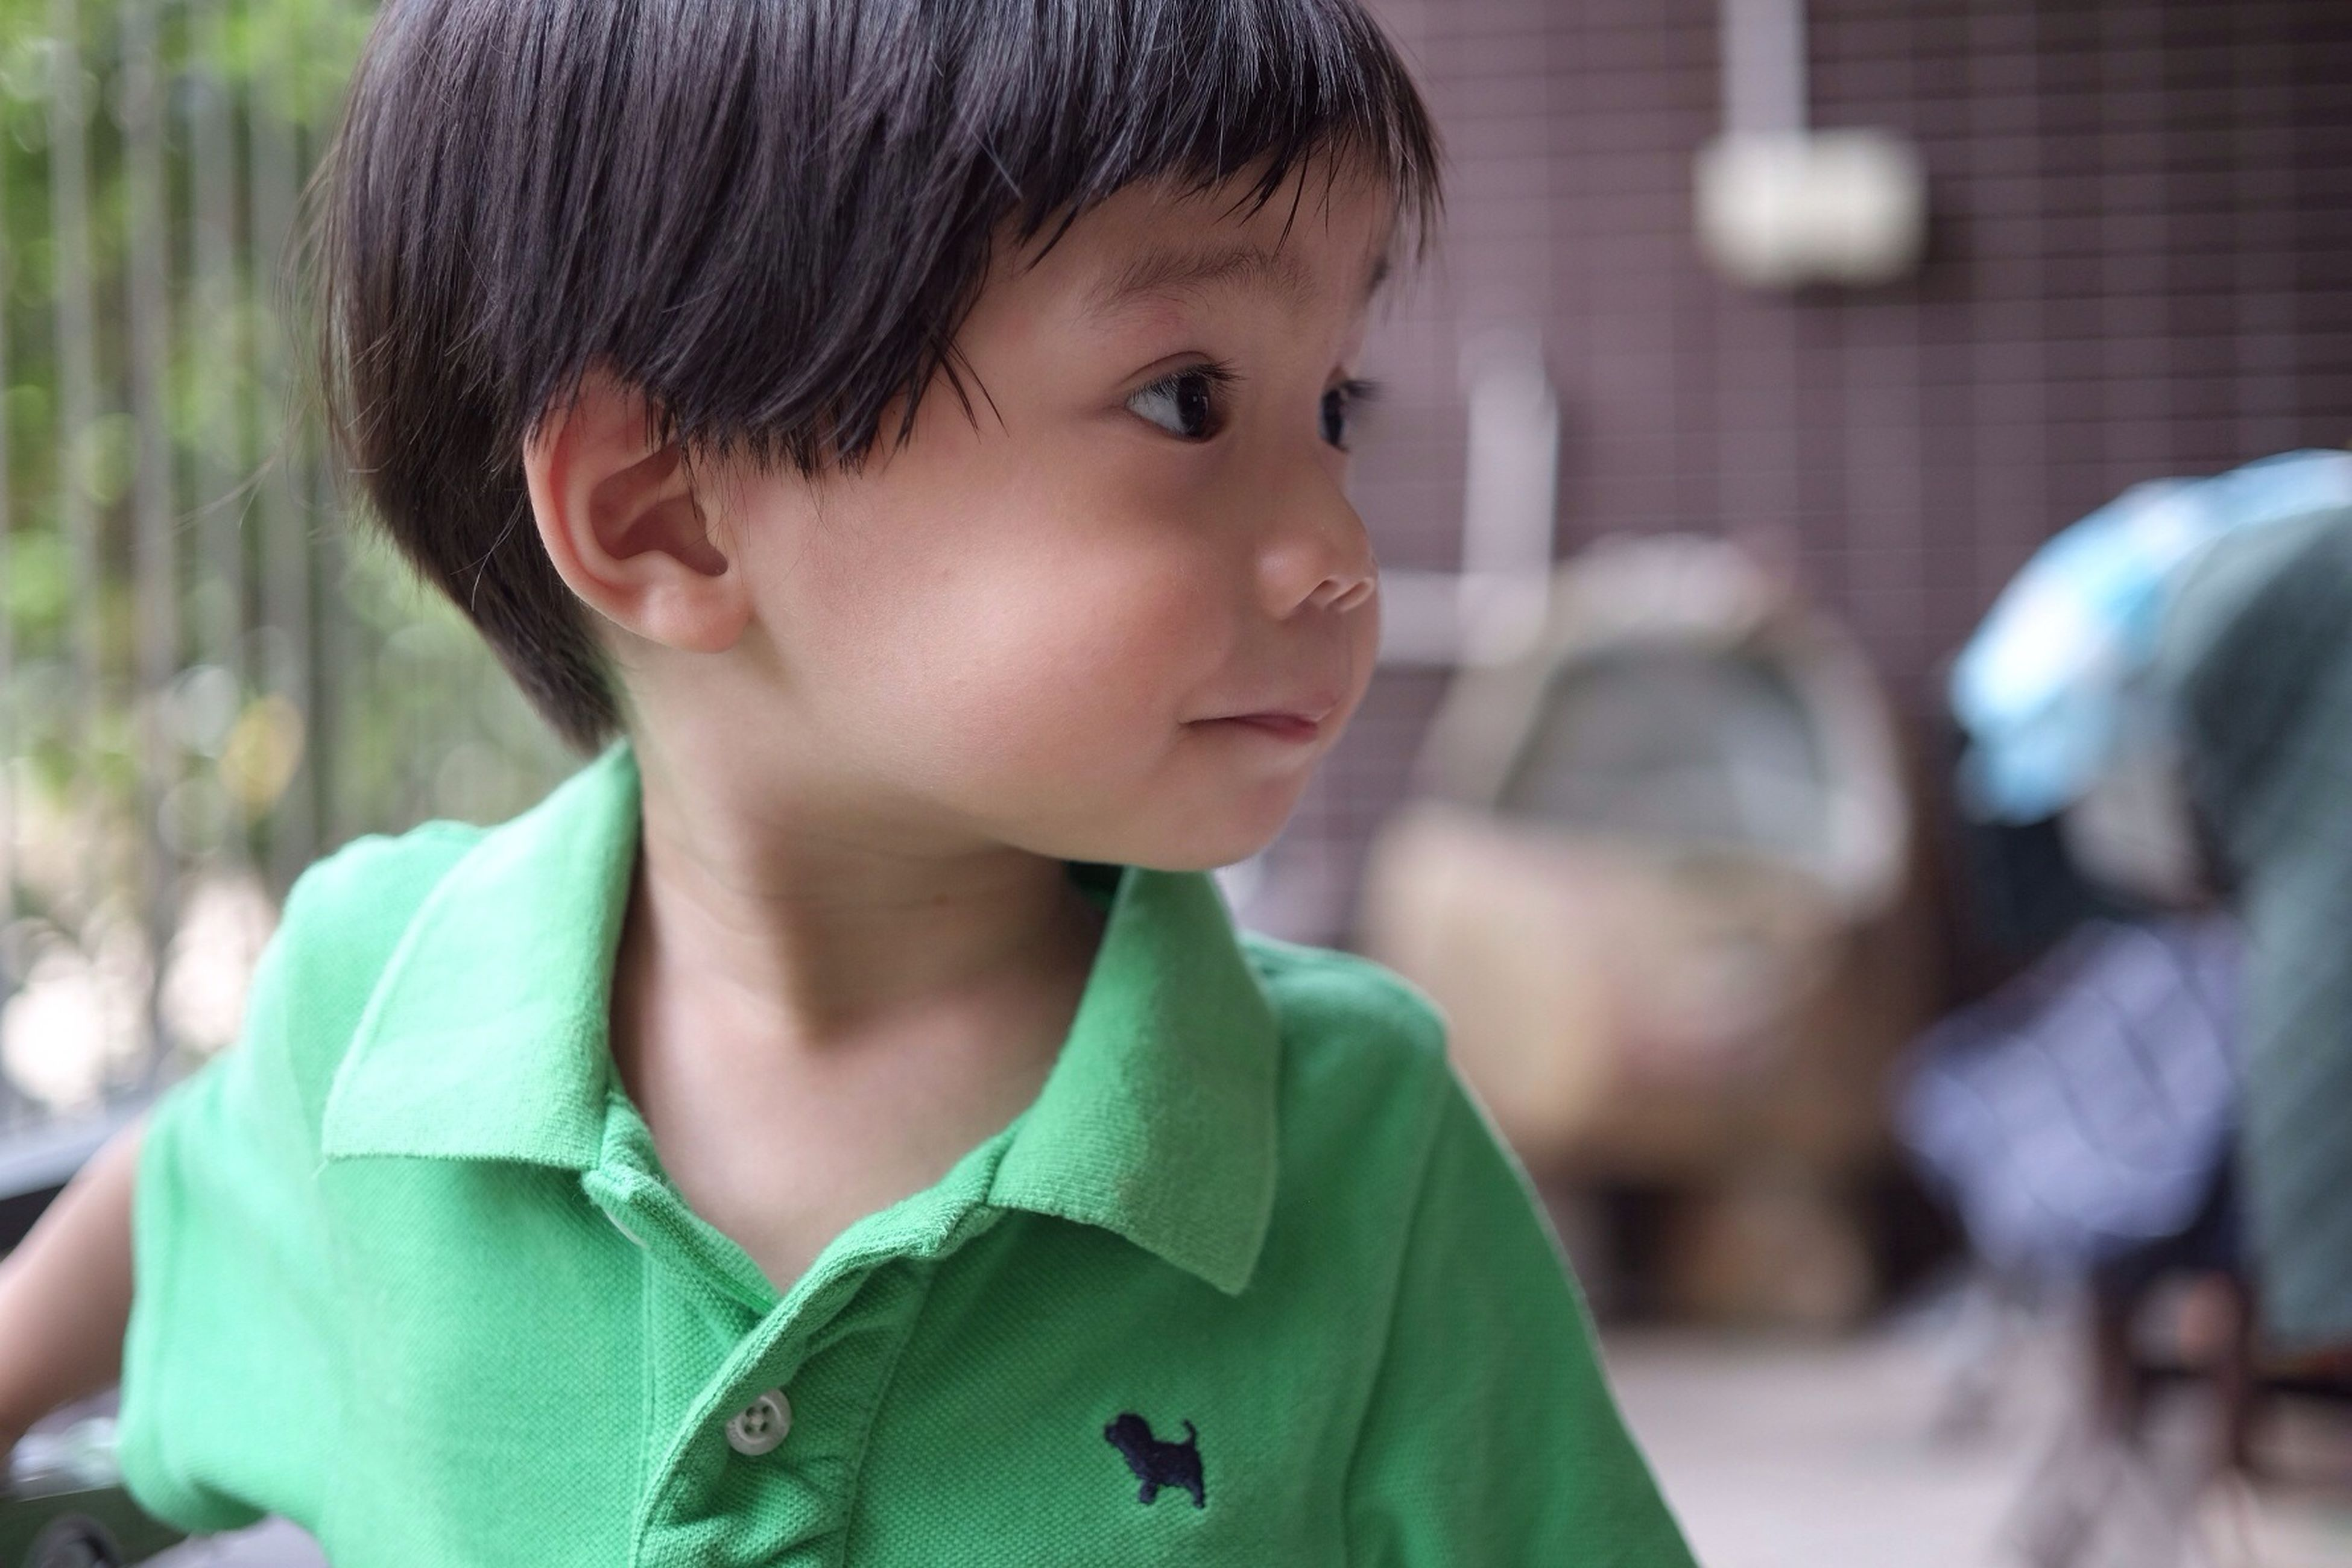 person, focus on foreground, lifestyles, headshot, portrait, childhood, looking at camera, leisure activity, elementary age, boys, casual clothing, front view, smiling, innocence, waist up, cute, close-up